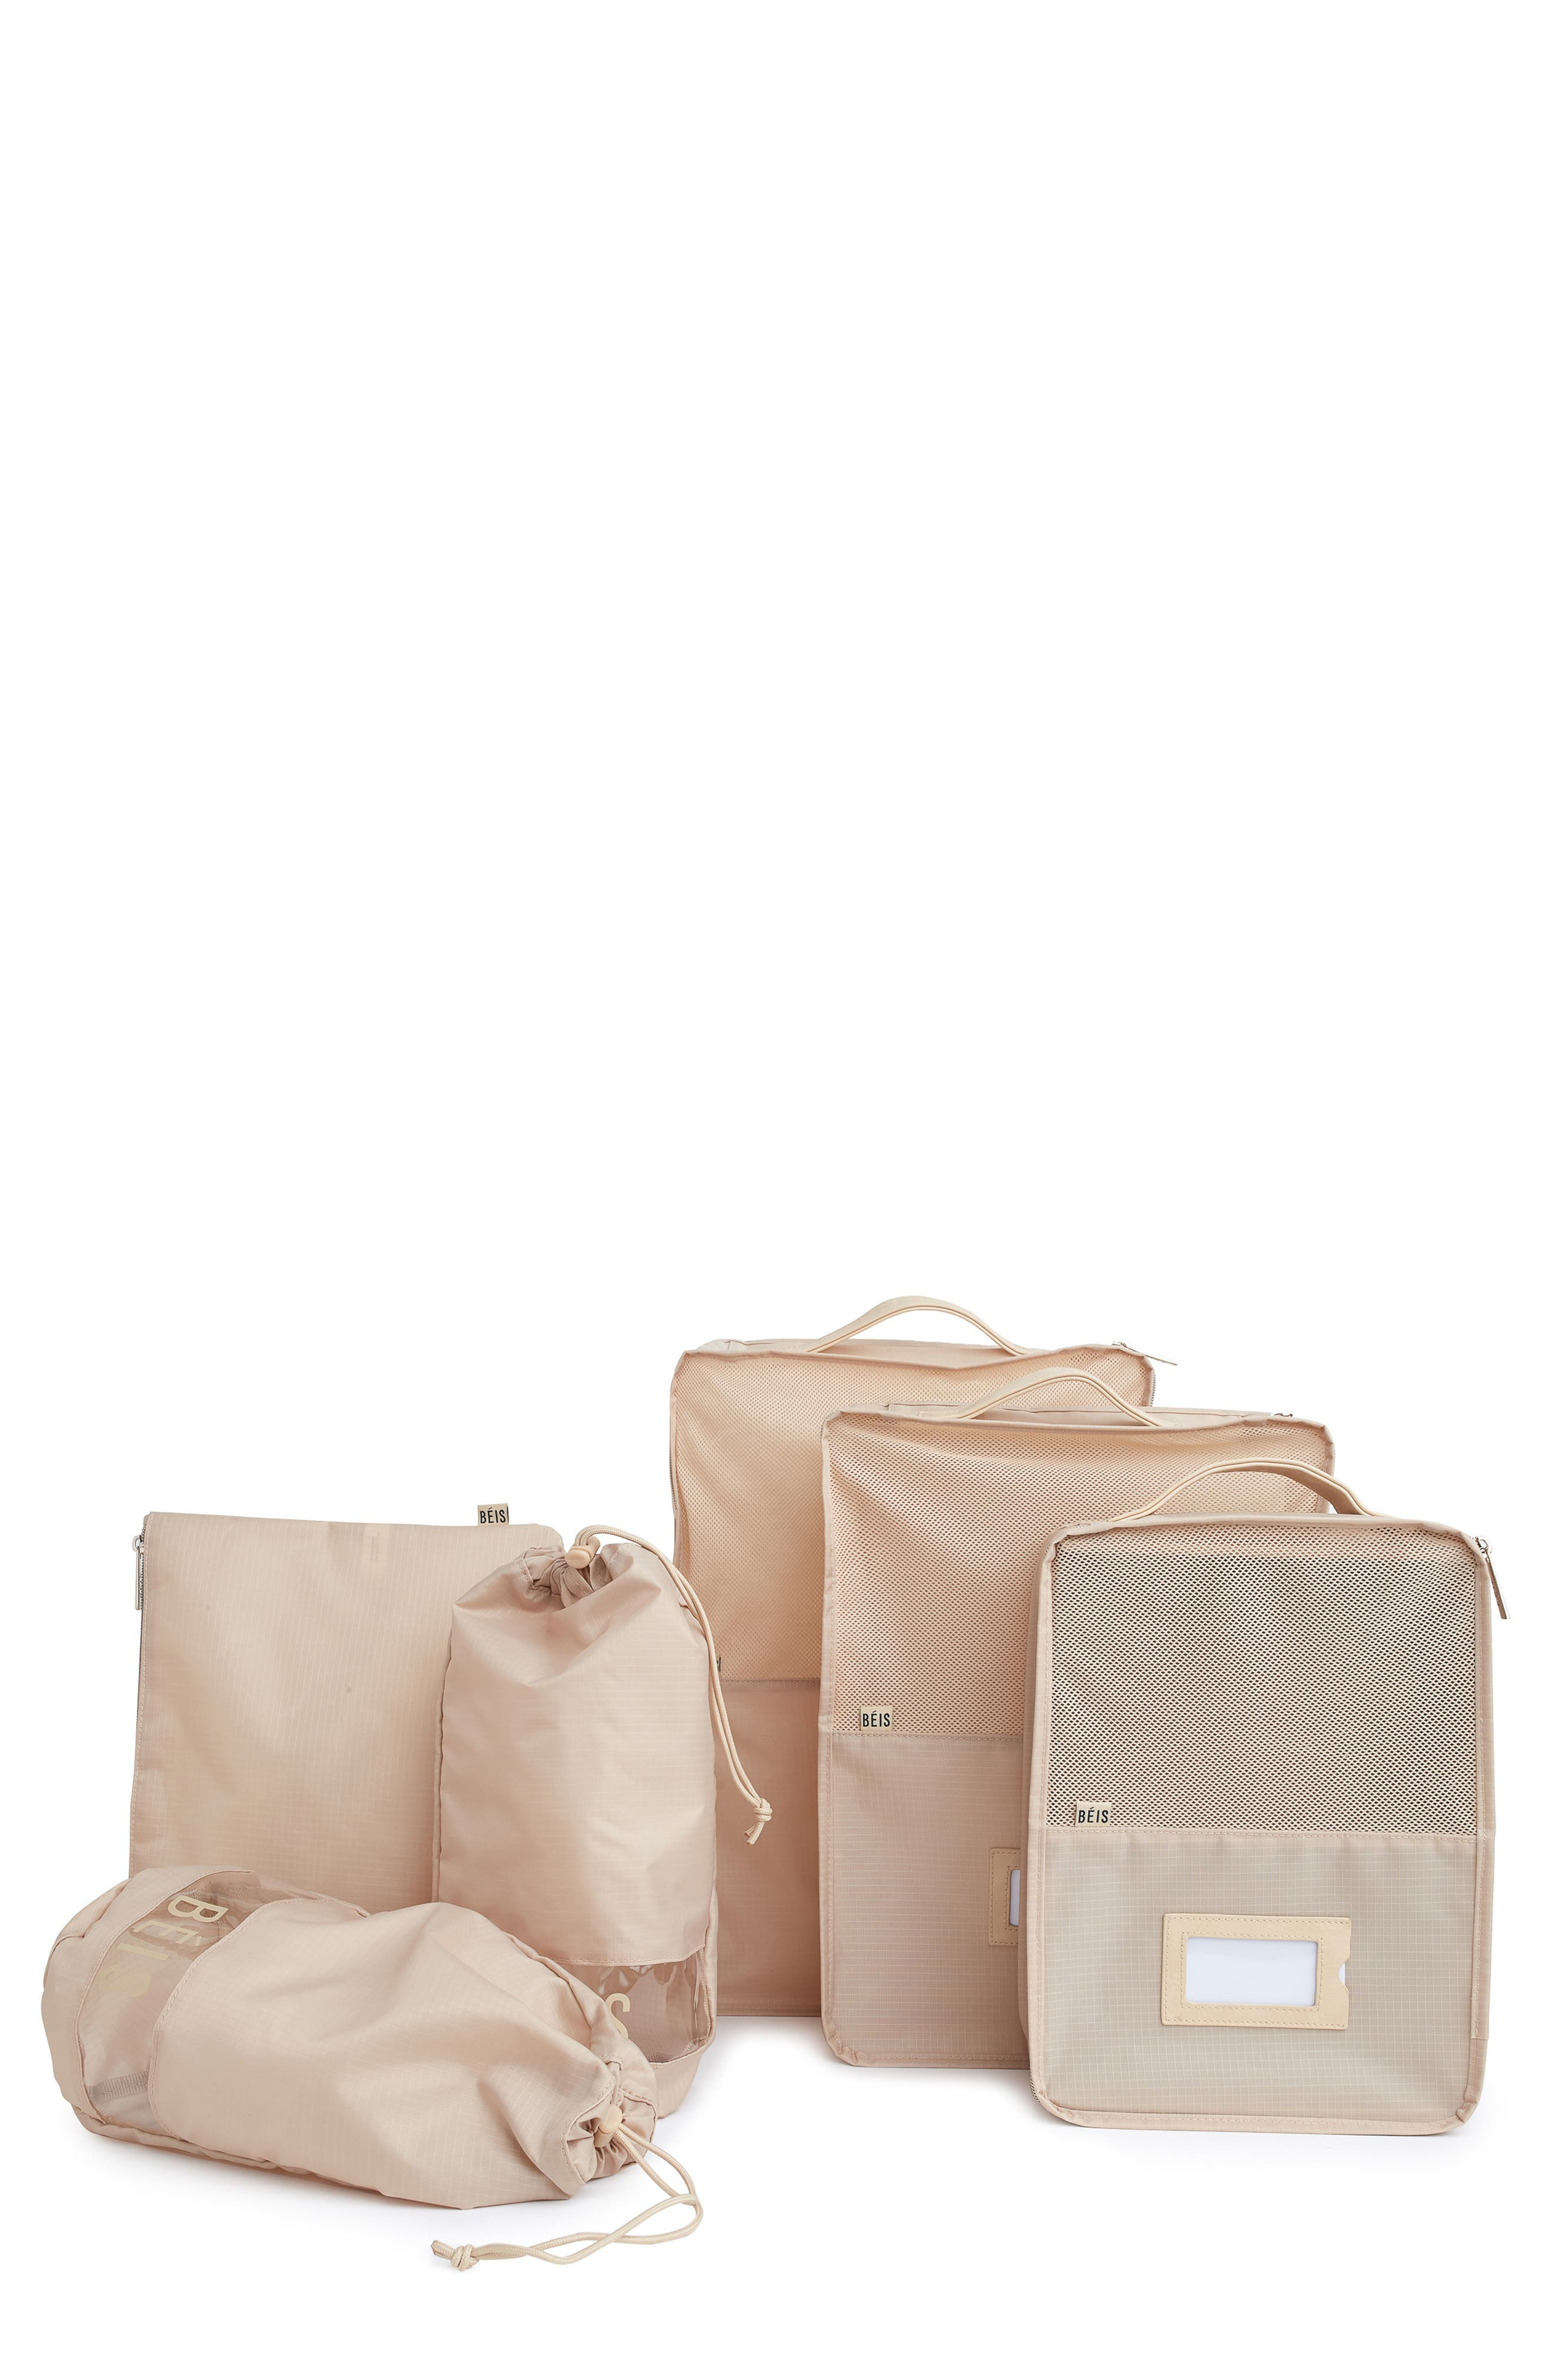 Whether you\\\'re on the go or on a closet-organizing kick, these packing cubes are ideal for keeping all the essentials in place. Small, medium and large cubes, shoe bags and a small zip pouch ensure that there\\\'s a perfect storage option for items of every size. Style Name: Beis The Packing Cube 6-Piece Set. Style Number: 5987910. Available in stores.